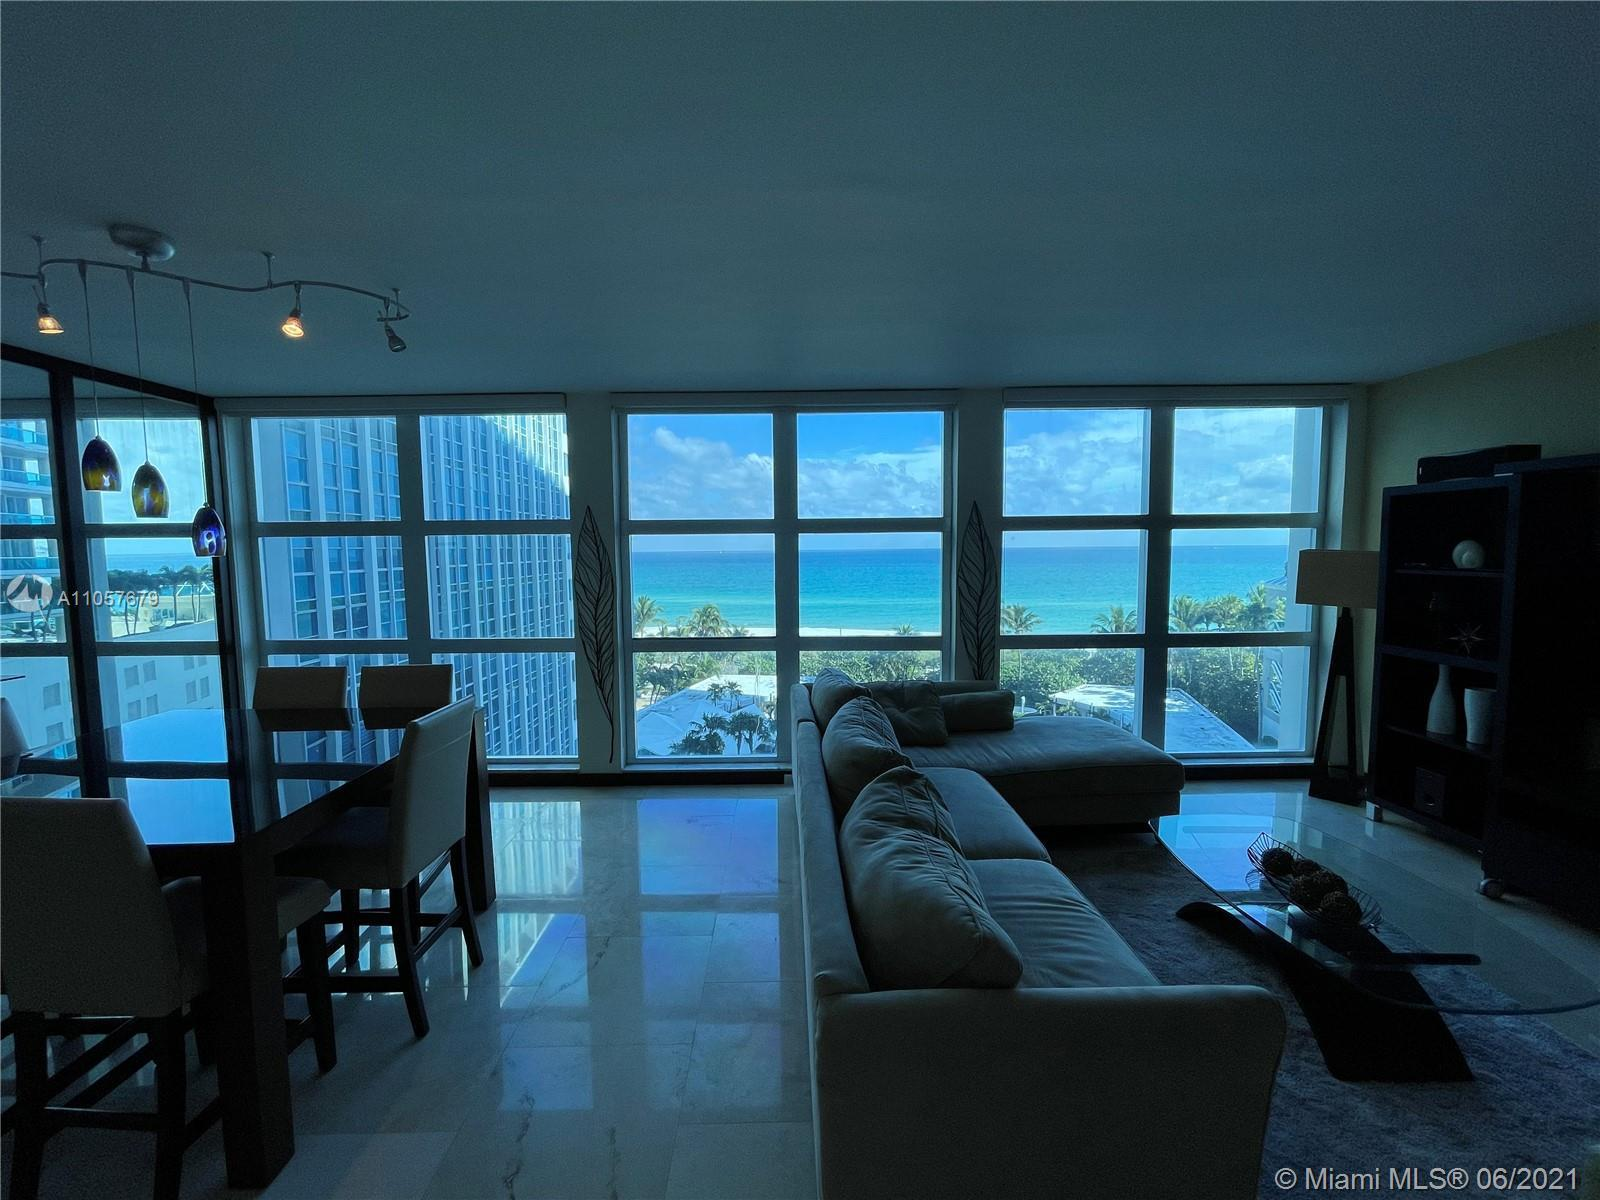 7th floor Corner unit ( 1260 sqft) with full unobstructed ocean views throughout unit  Unit is fully